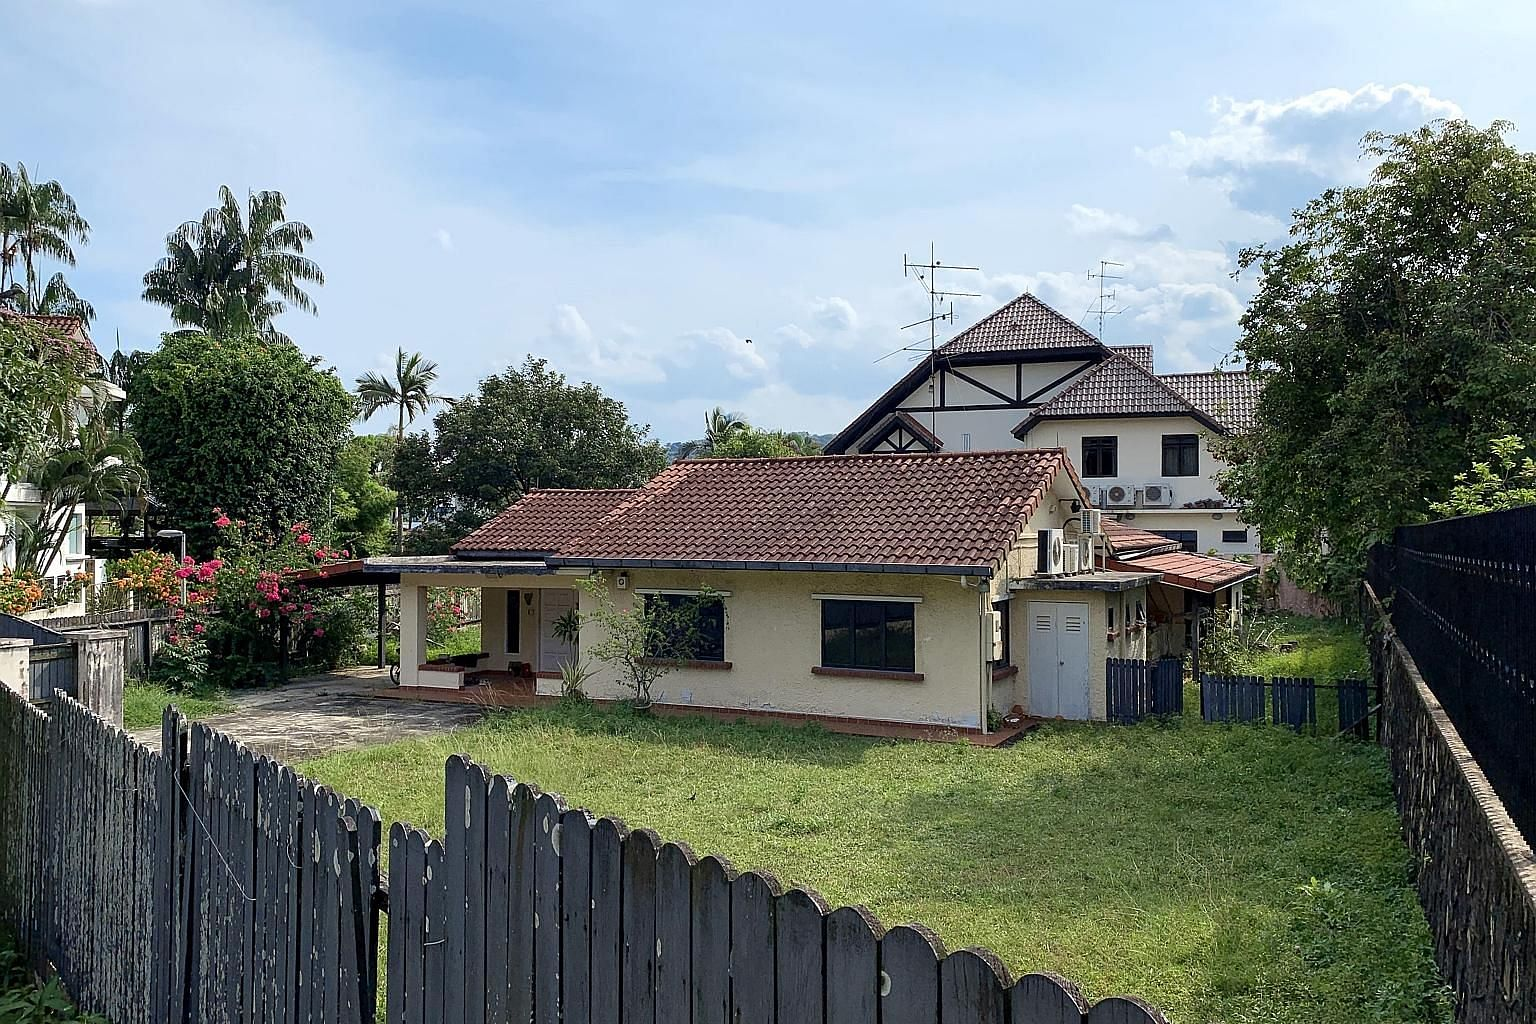 The good class bungalow in Chestnut Crescent to be auctioned on Sept 30 is a freehold property. The single-storey house can be redeveloped to 21/2 storeys. It is near the Cashew and Bukit Panjang MRT stations, and a short drive from Dairy Farm Quarry